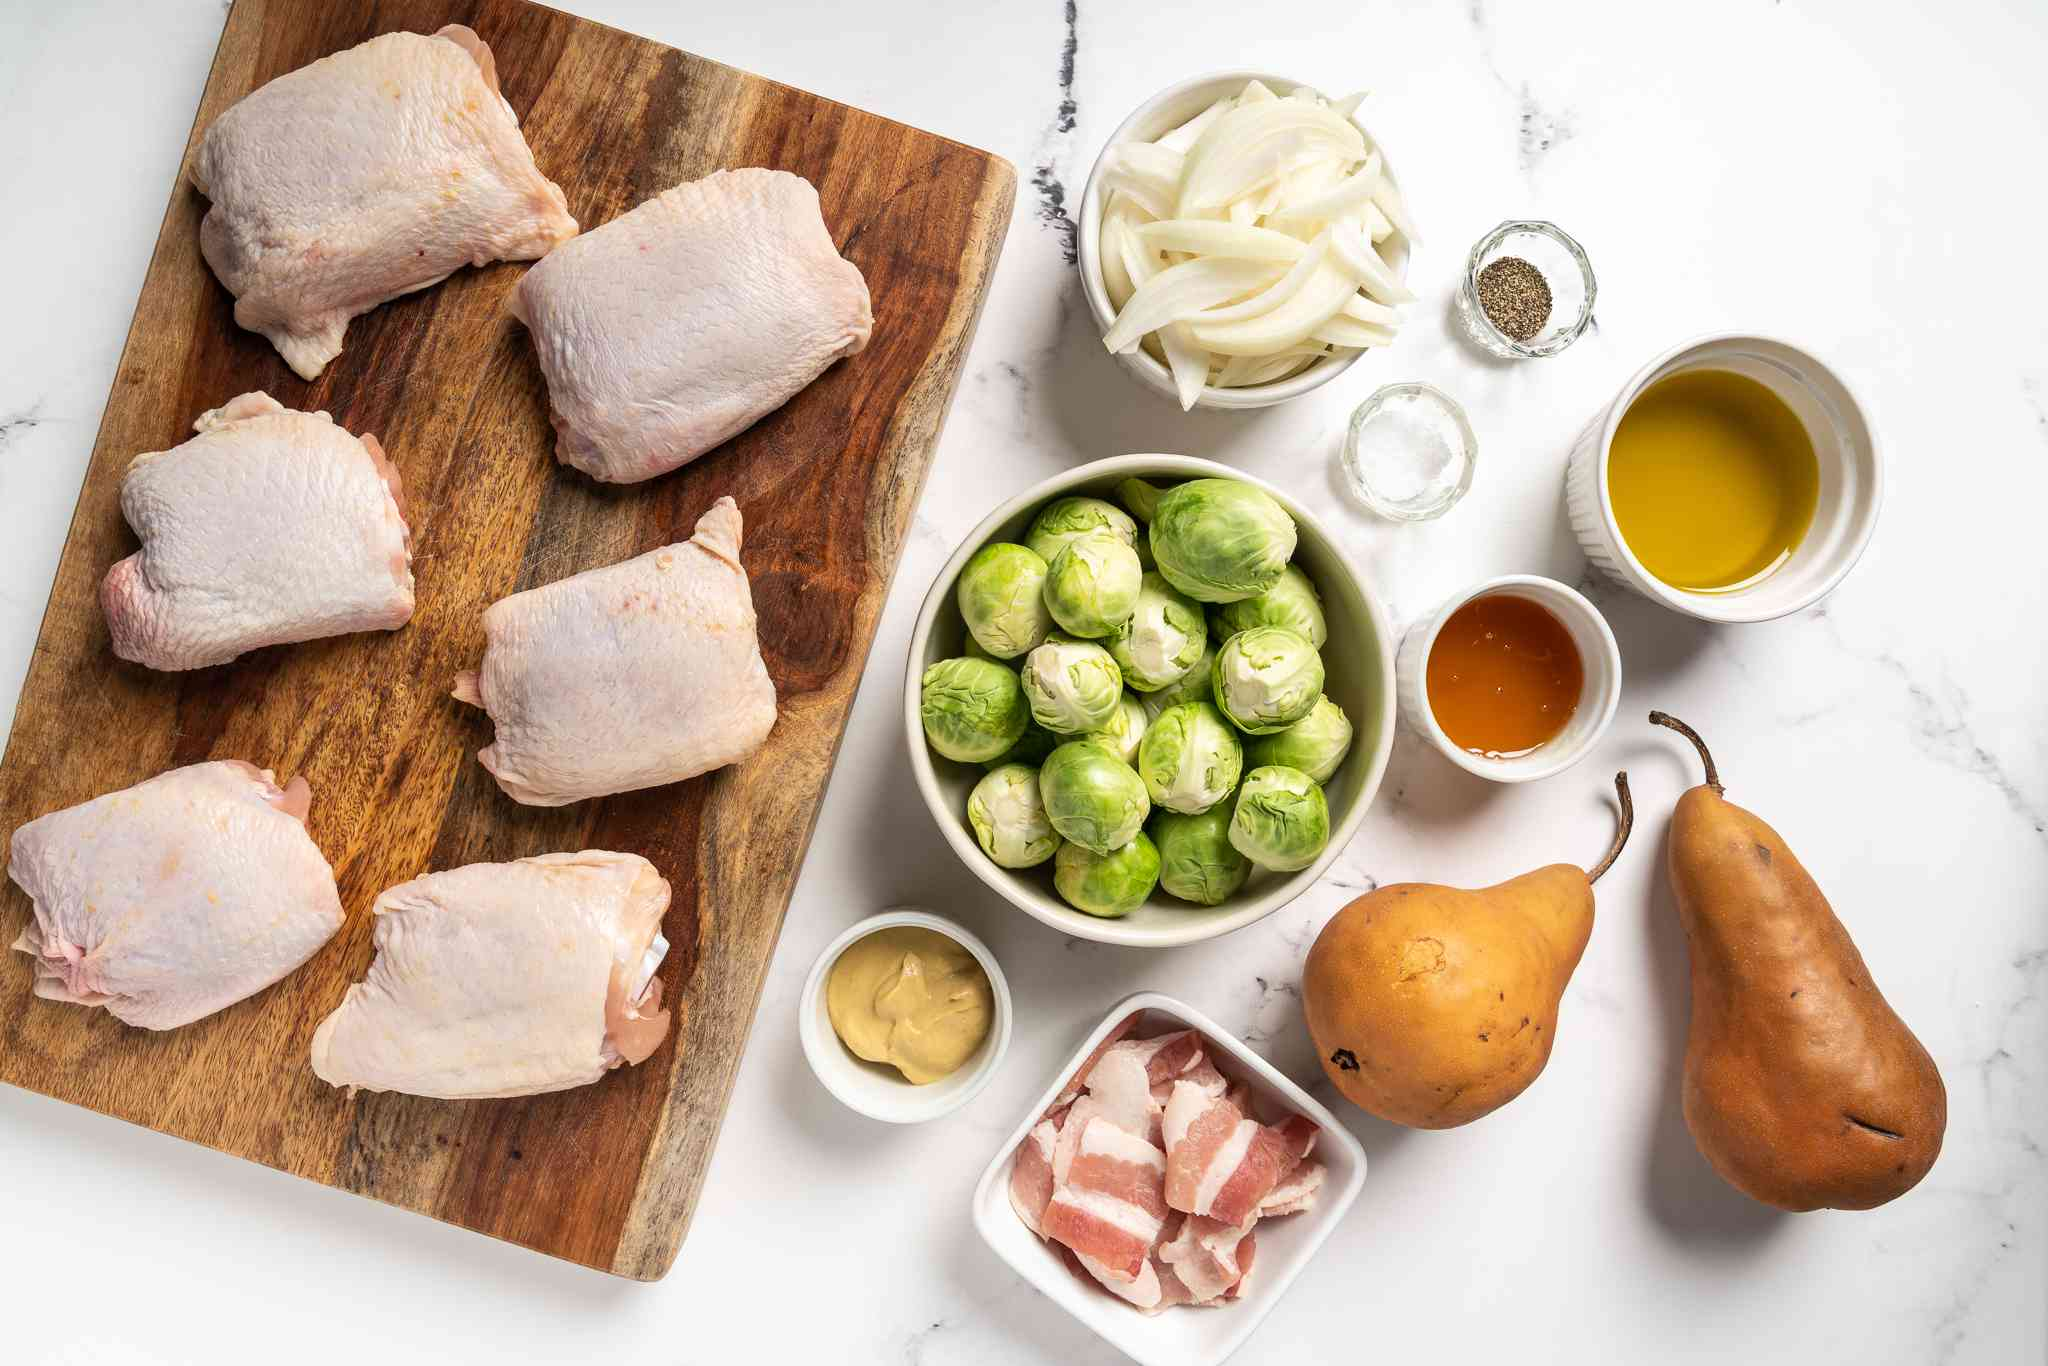 Roasted Chicken Thighs With Brussels Sprouts and Pears ingredients